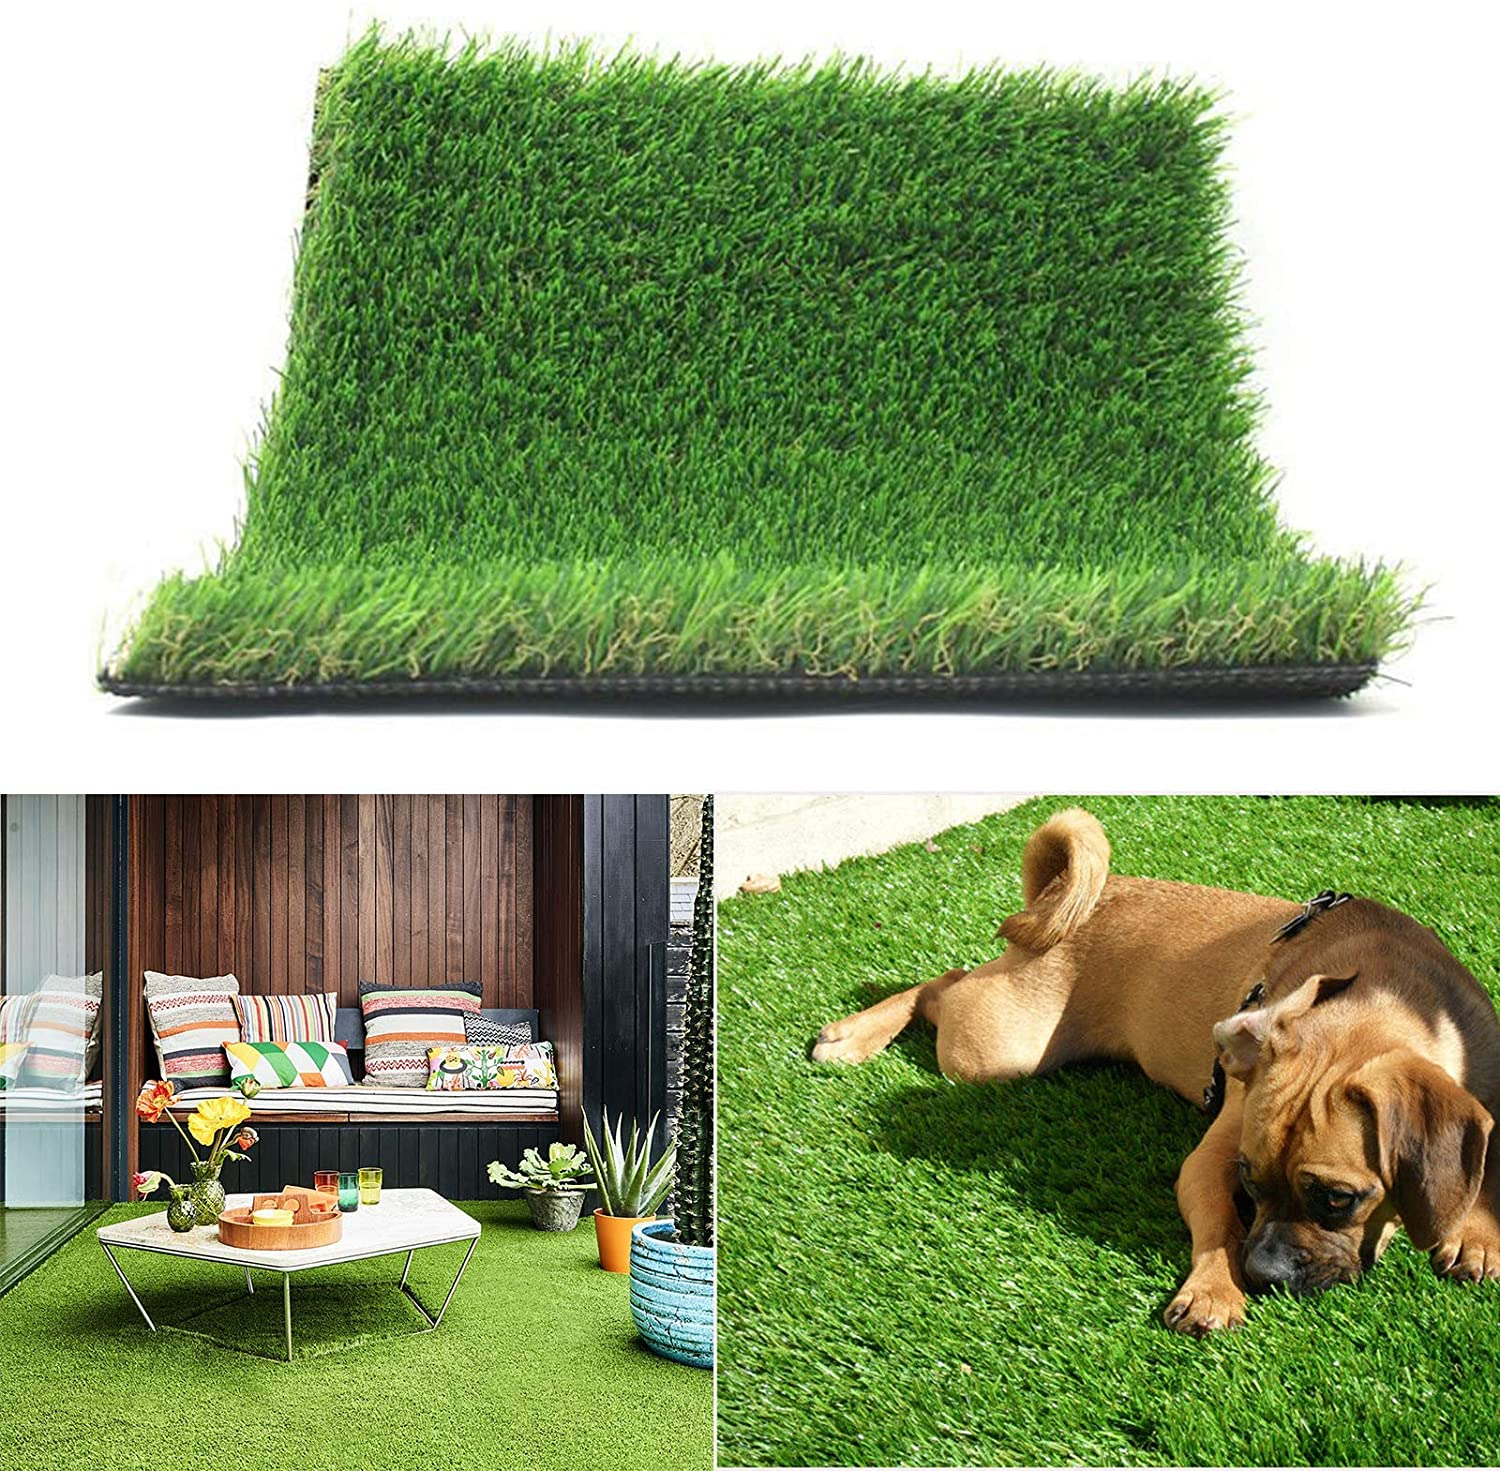 Realistic Thick Artificial Grass Turf -Indoor Outdoor Garden Lawn Landscape Synthetic Grass Mat - Thick Fake Grass Rug (4FTX6FT(24 Square FT))